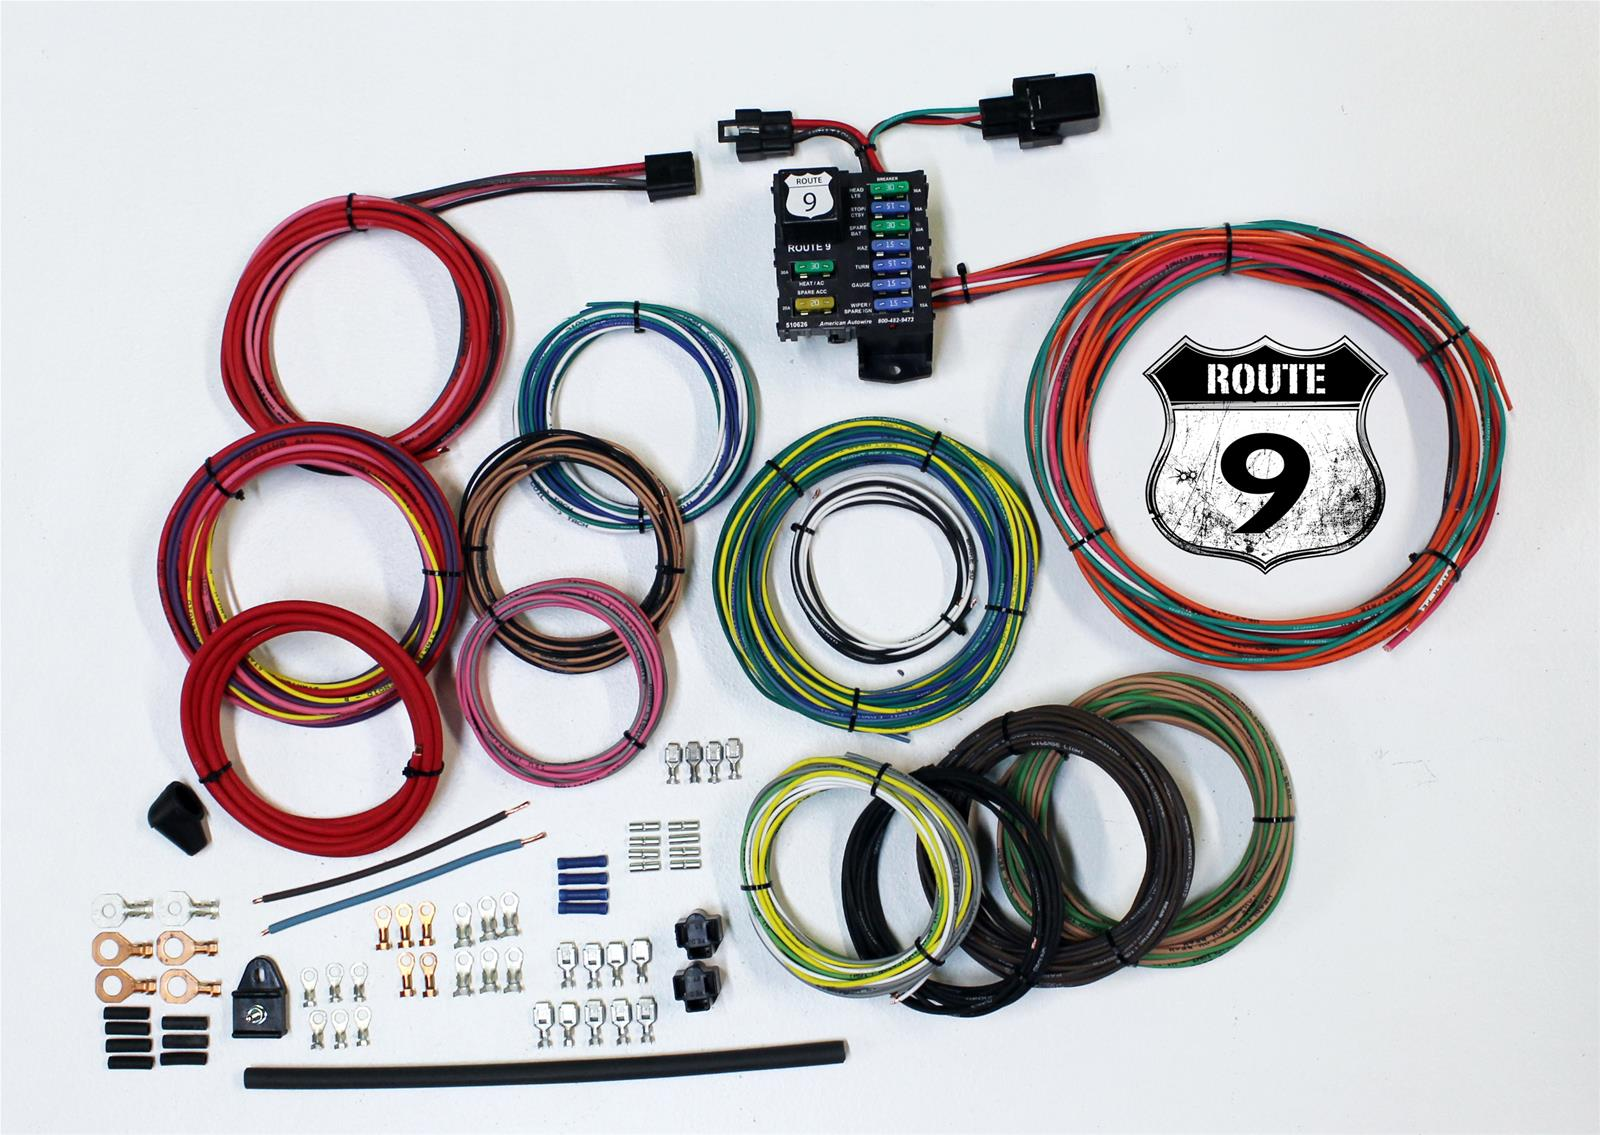 aww 510625_xl american autowire route 9 universal wiring systems 510625 free american wire harness at mifinder.co